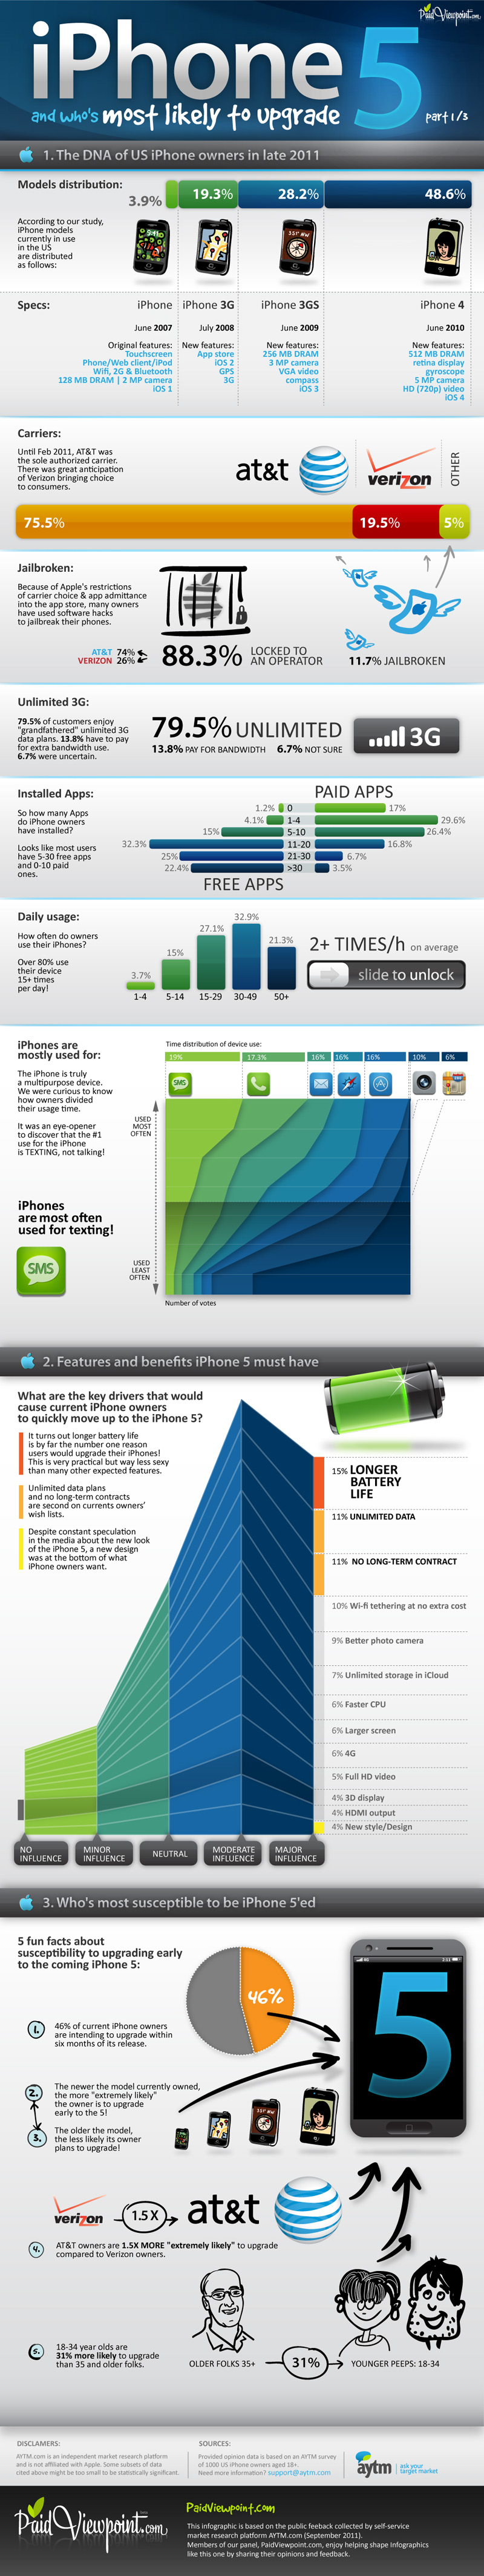 iPhone 5 and who is most likely to upgrade